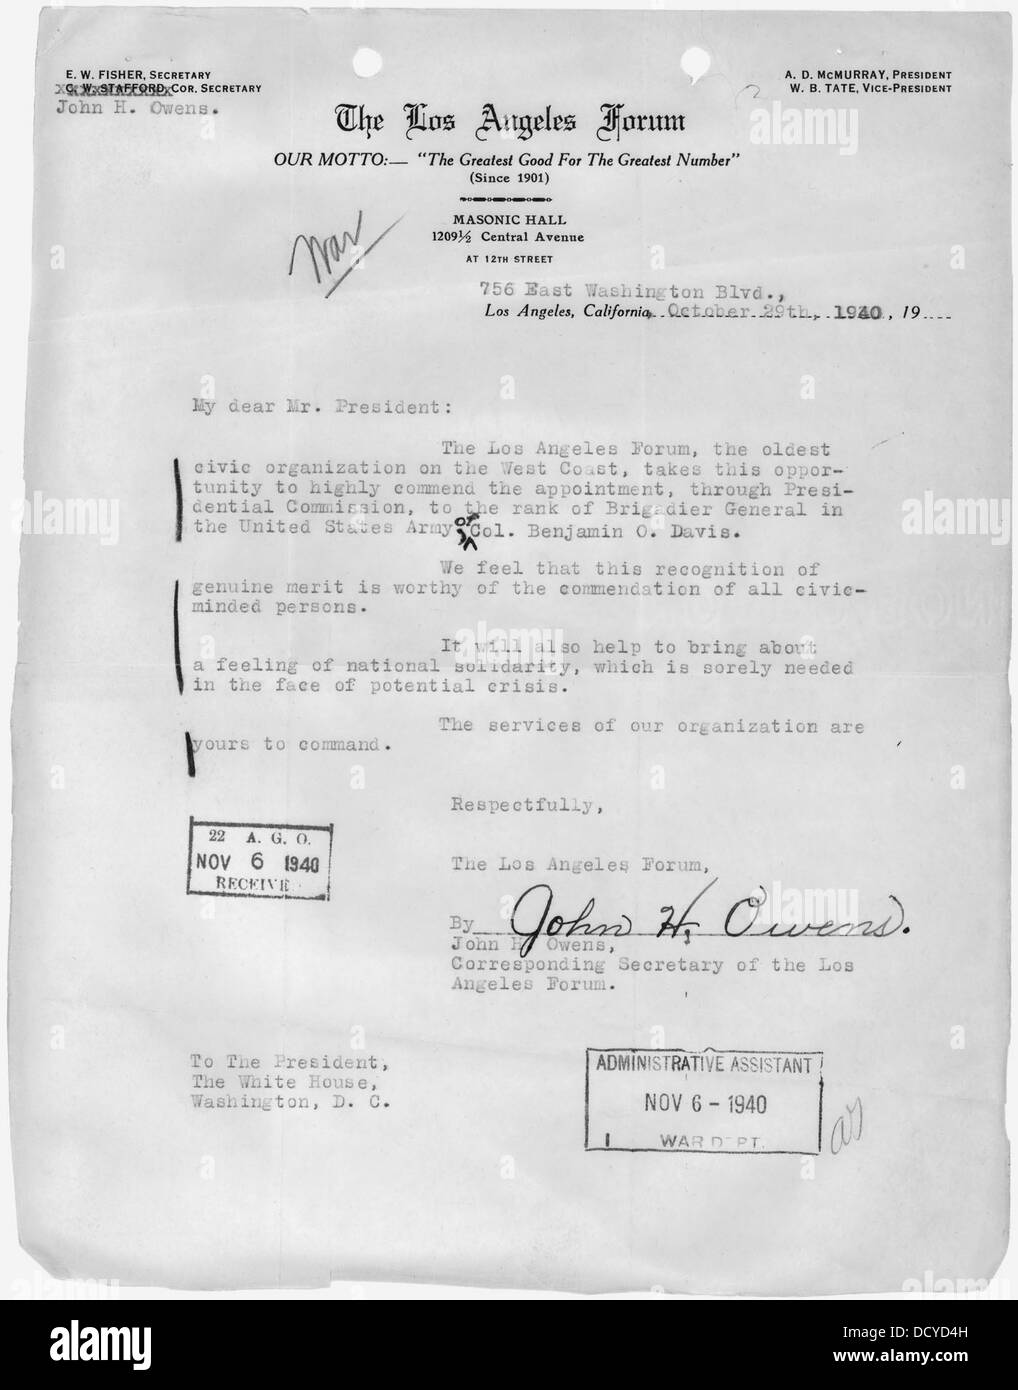 Letter from John H. Owens of Los Angeles, California, Corresponding Secretary of the Los Angeles Forum, to the... - Stock Image